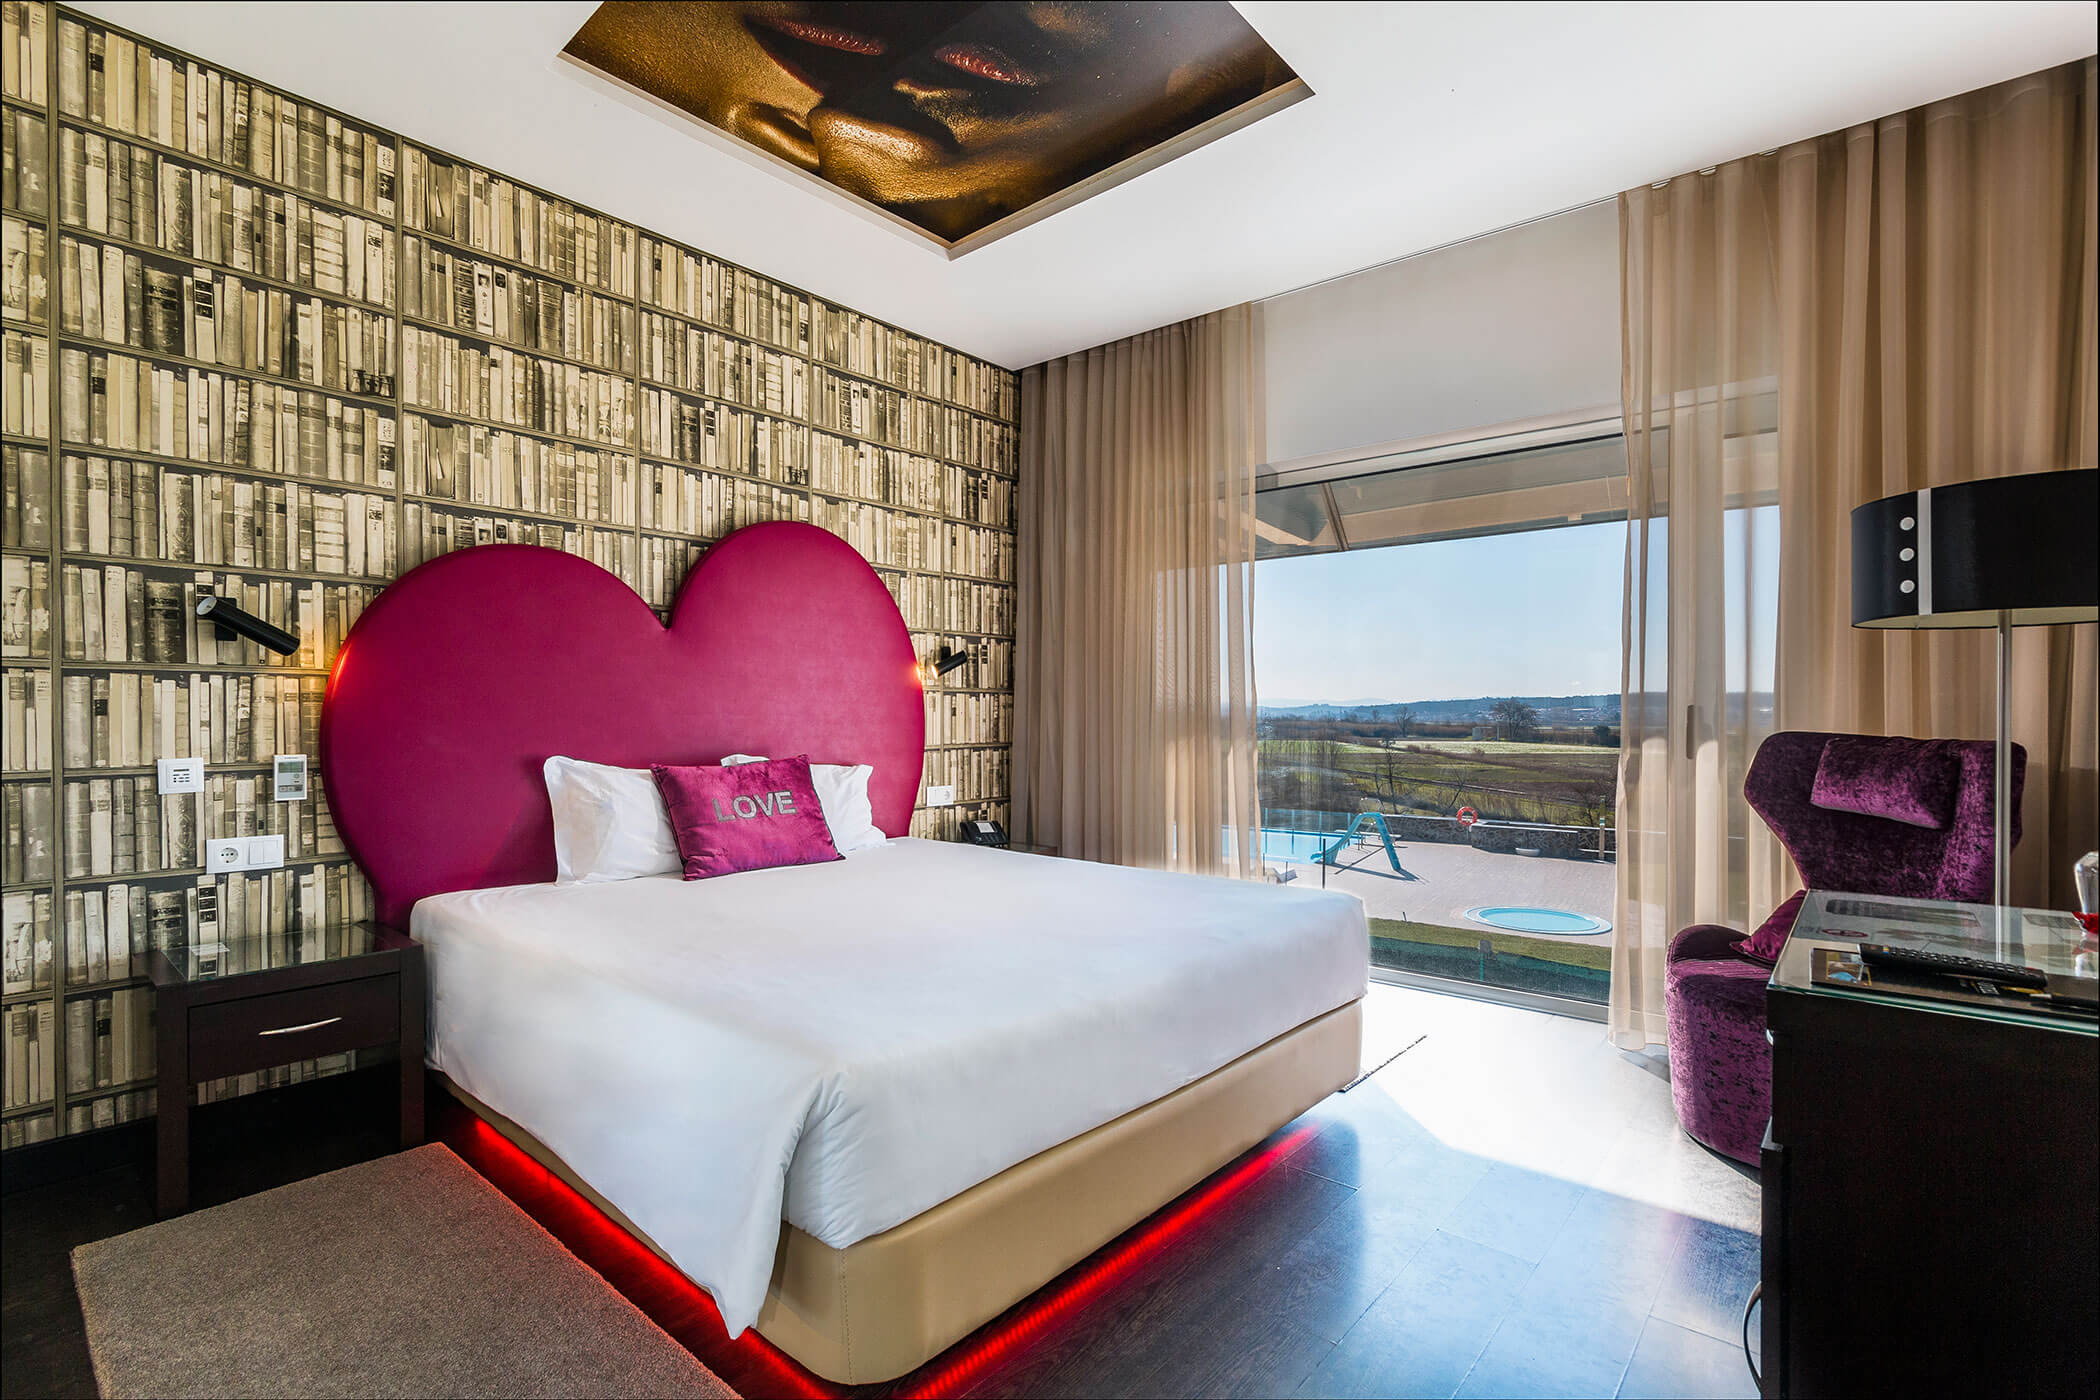 Room Crime do Padre Amaro - Lisotel Hotel and Spa, Leiria